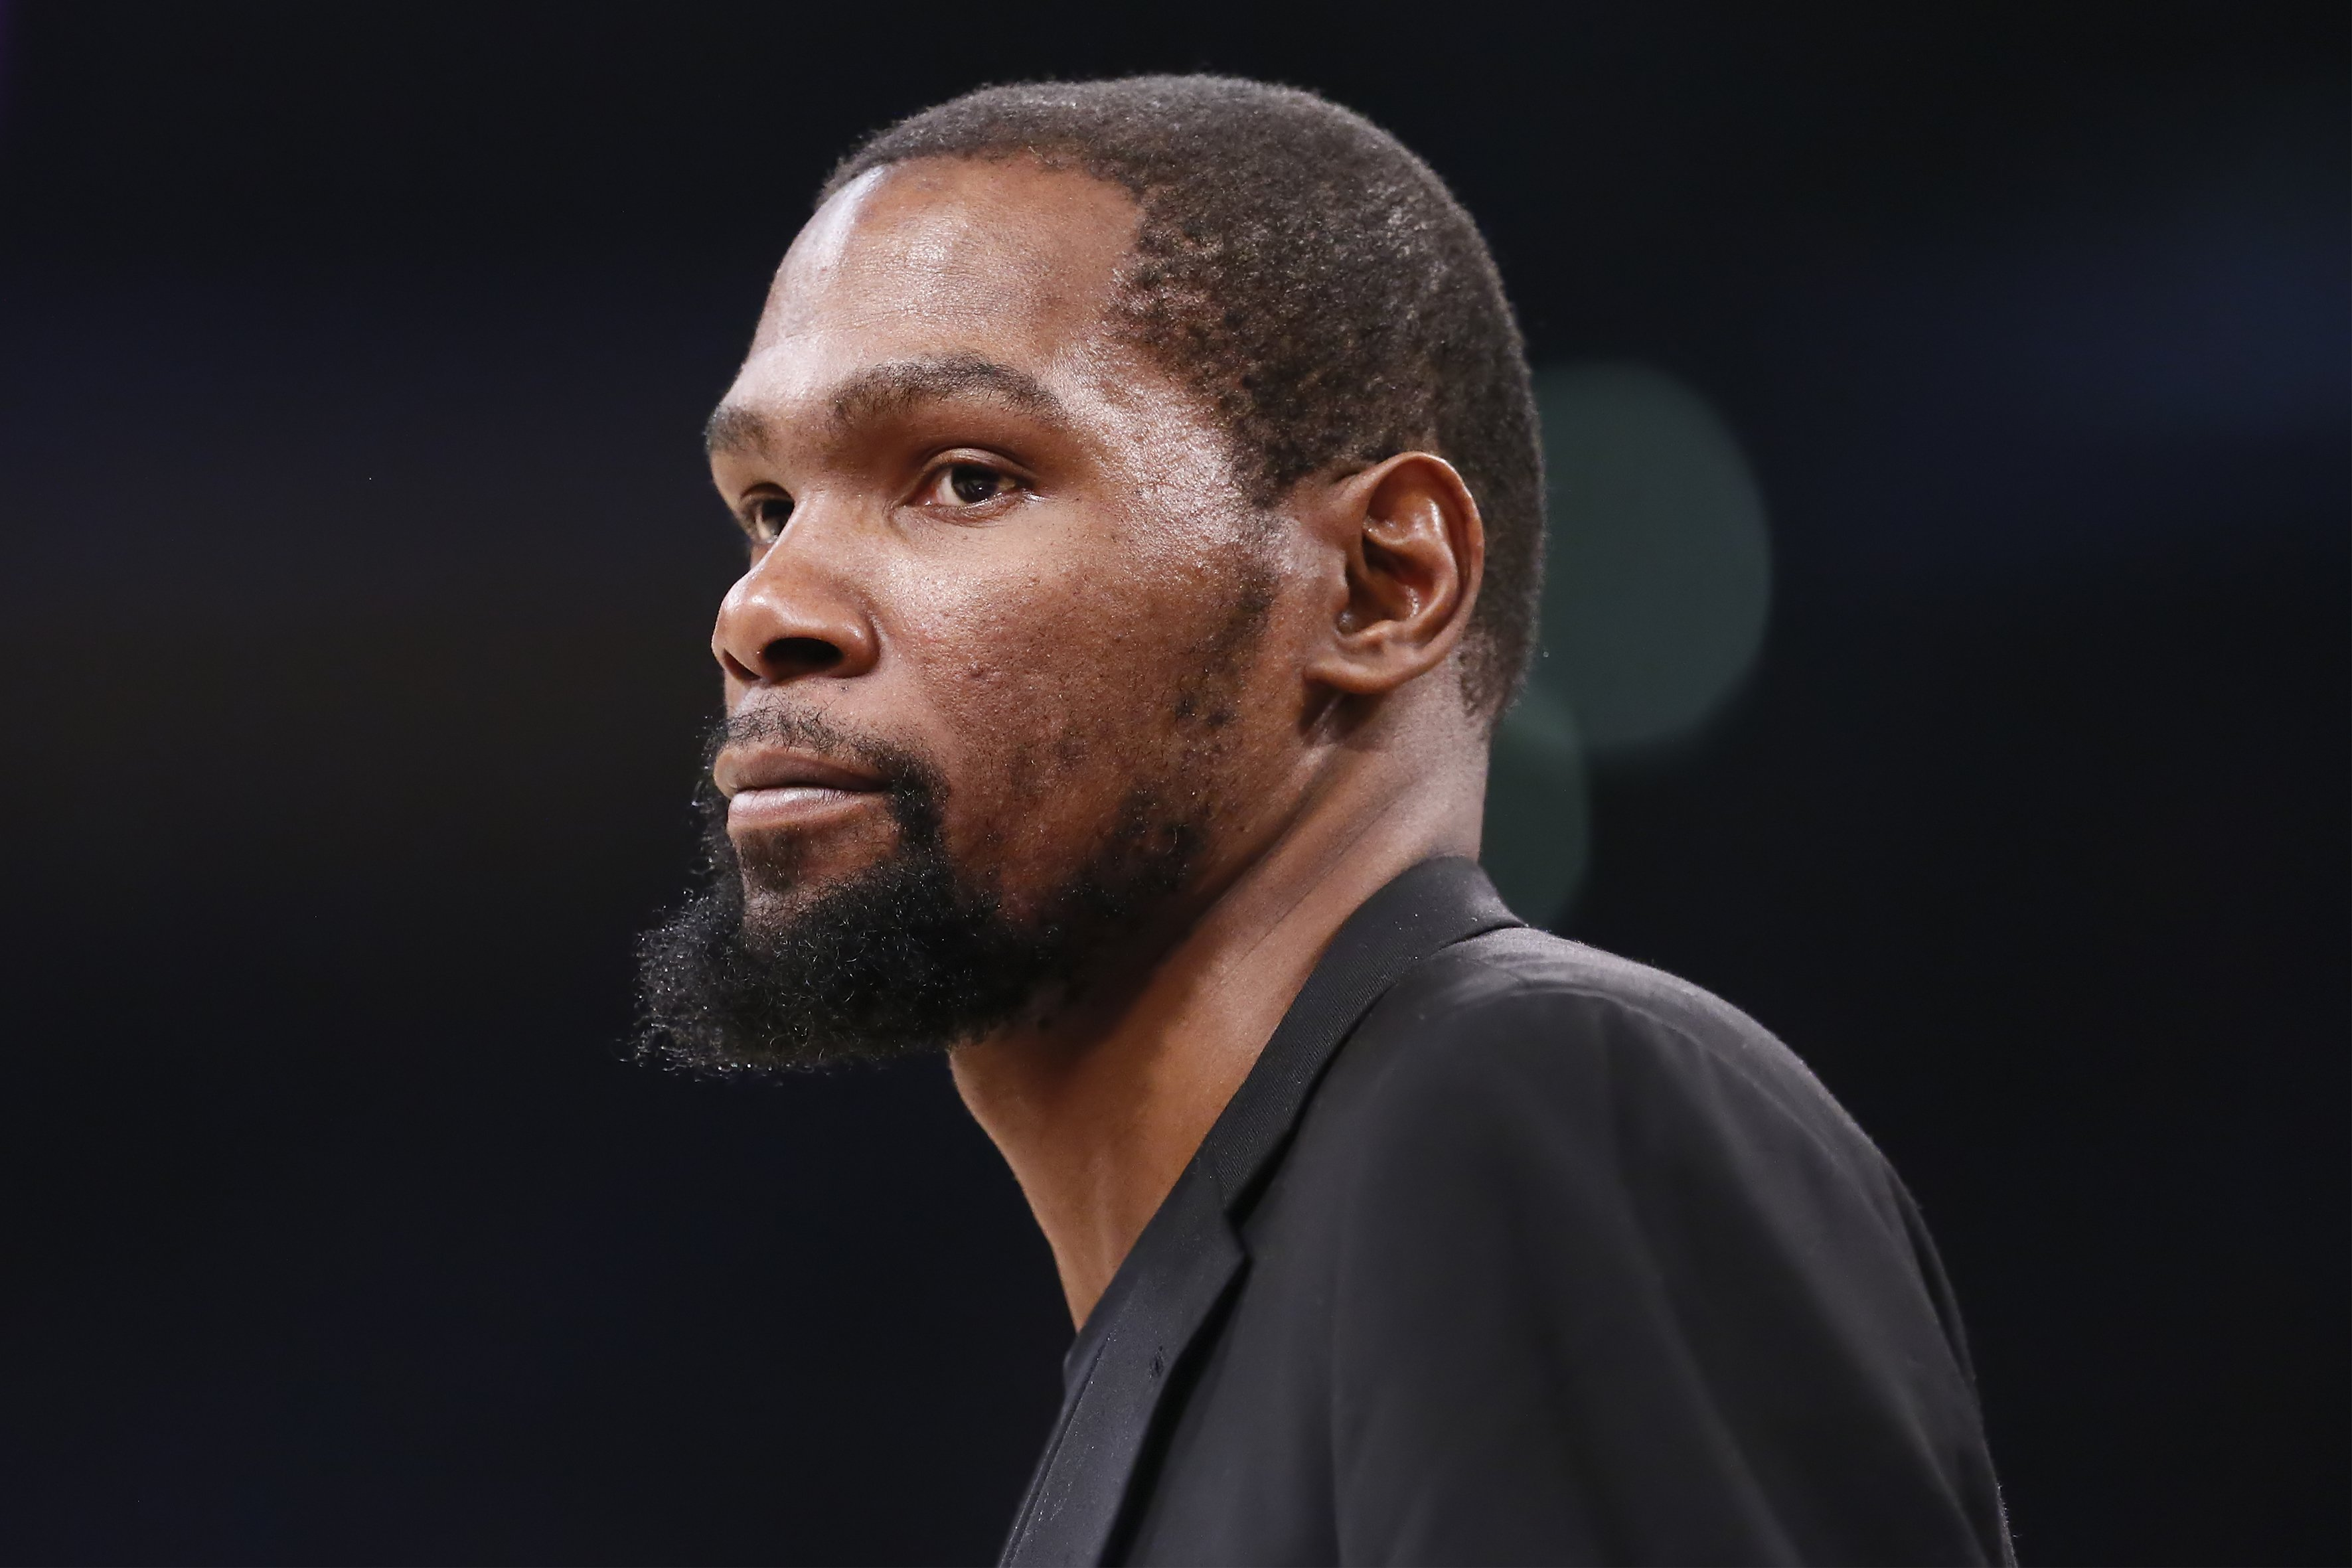 Kevin Durant looks on during a game at the Staples Center on March 10, 2020 in Los Angeles, CA | Photo: GettyImages